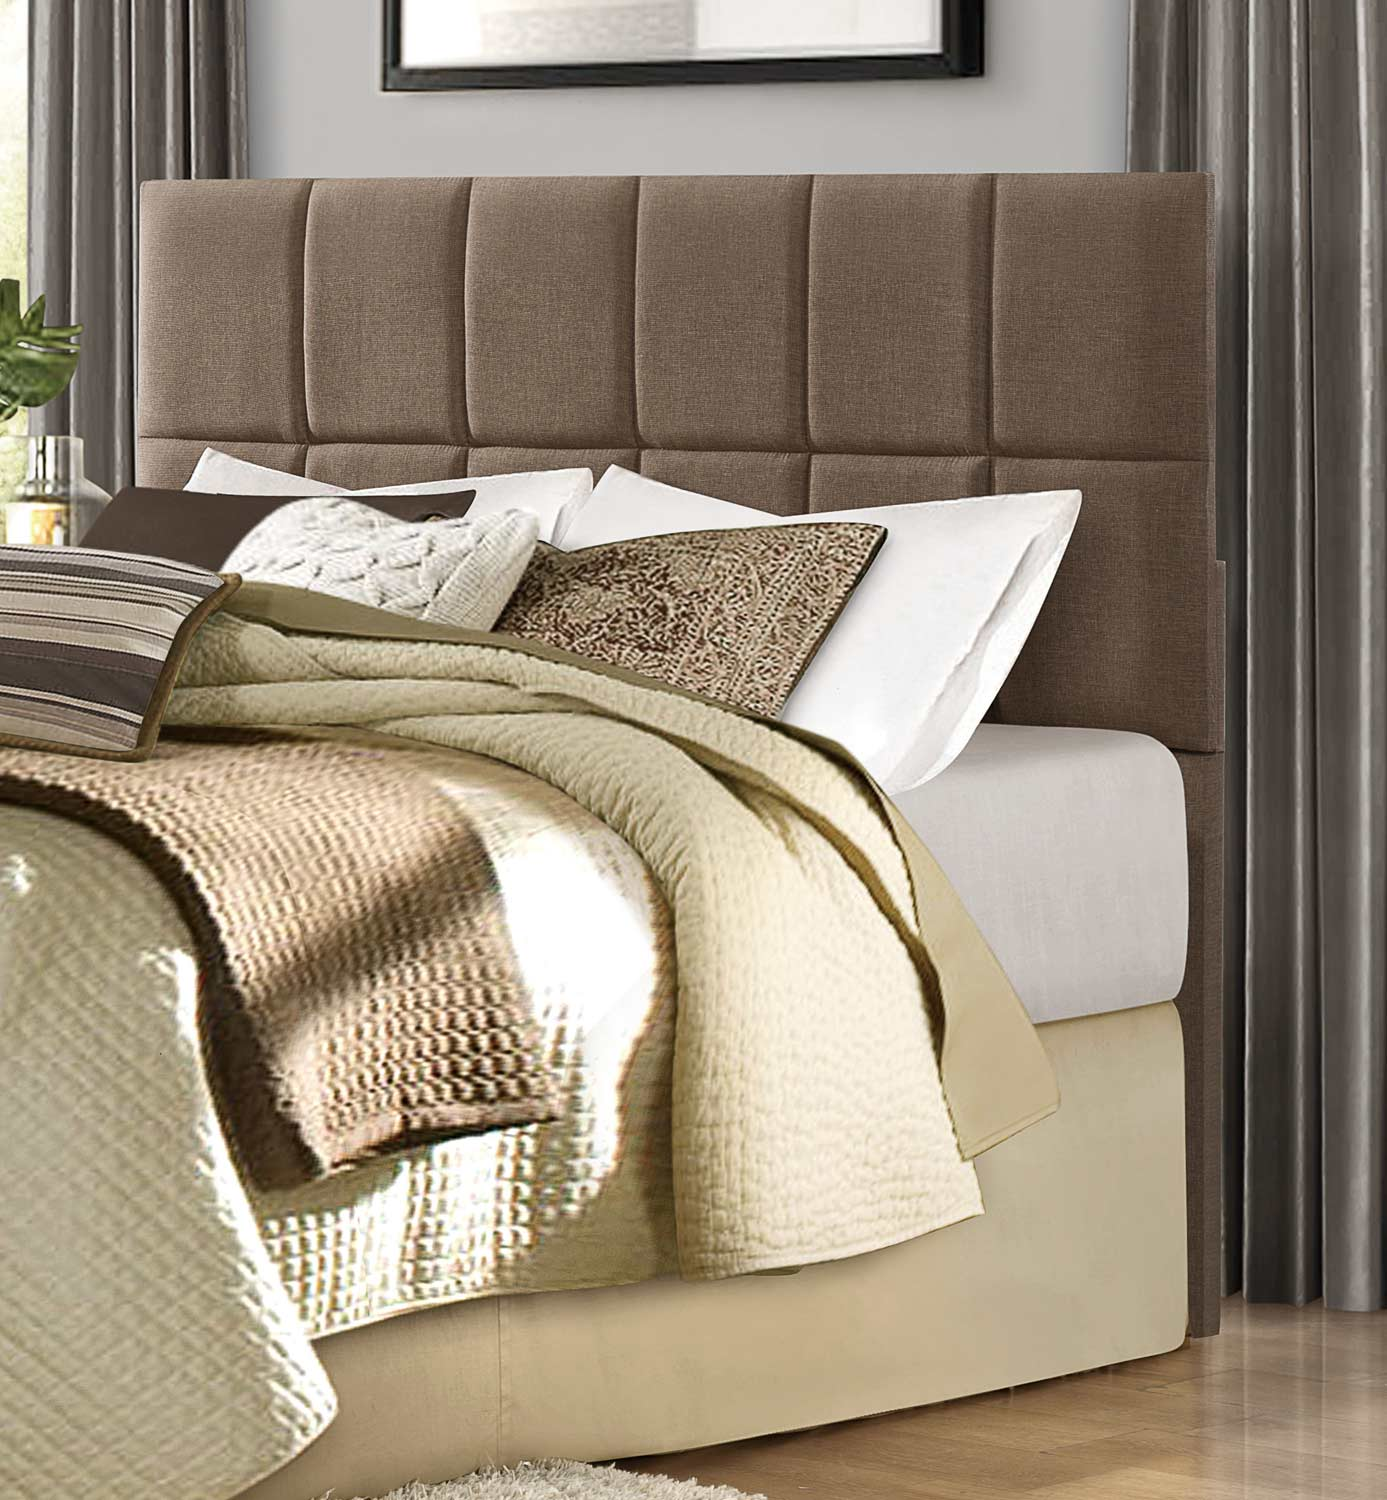 Homelegance Portrero Upholstered Headboard - Brown